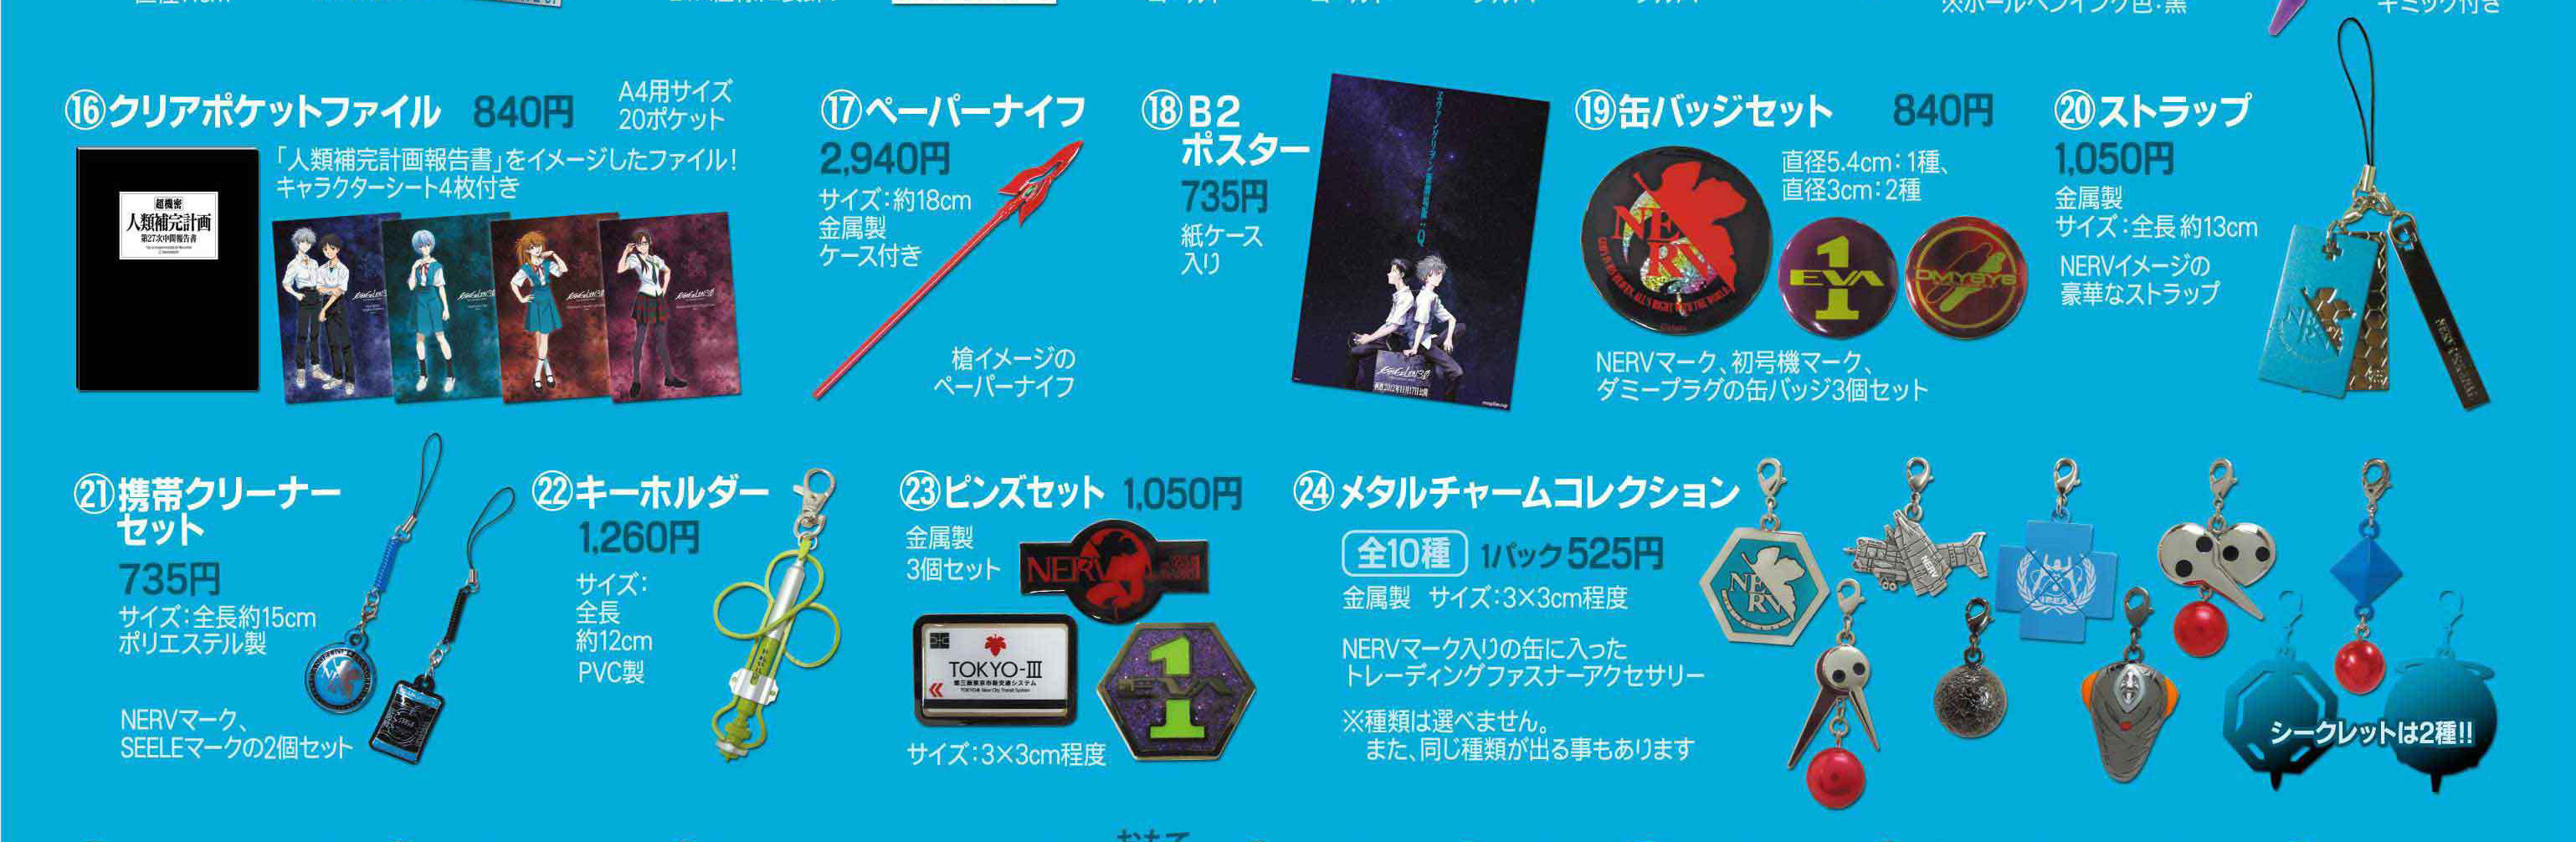 Evangelion 3 0 No 46 Character Goods Sold By Theaters